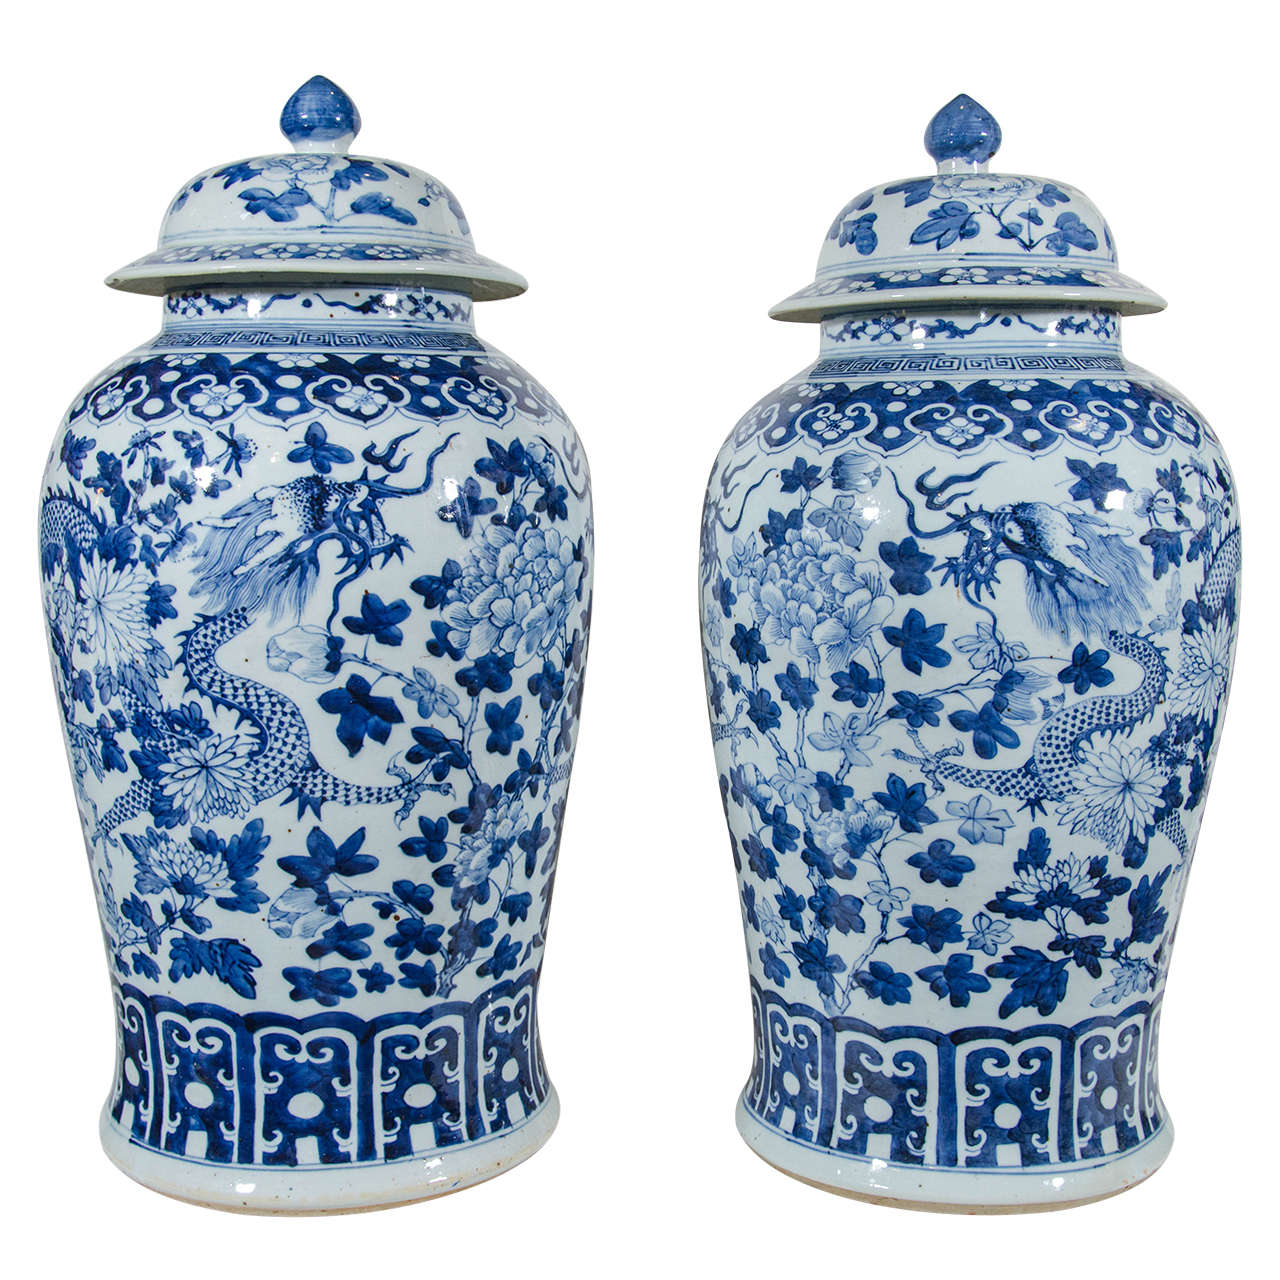 Pair Of Large Blue And White Chinese Porcelain Vases With Dragons For